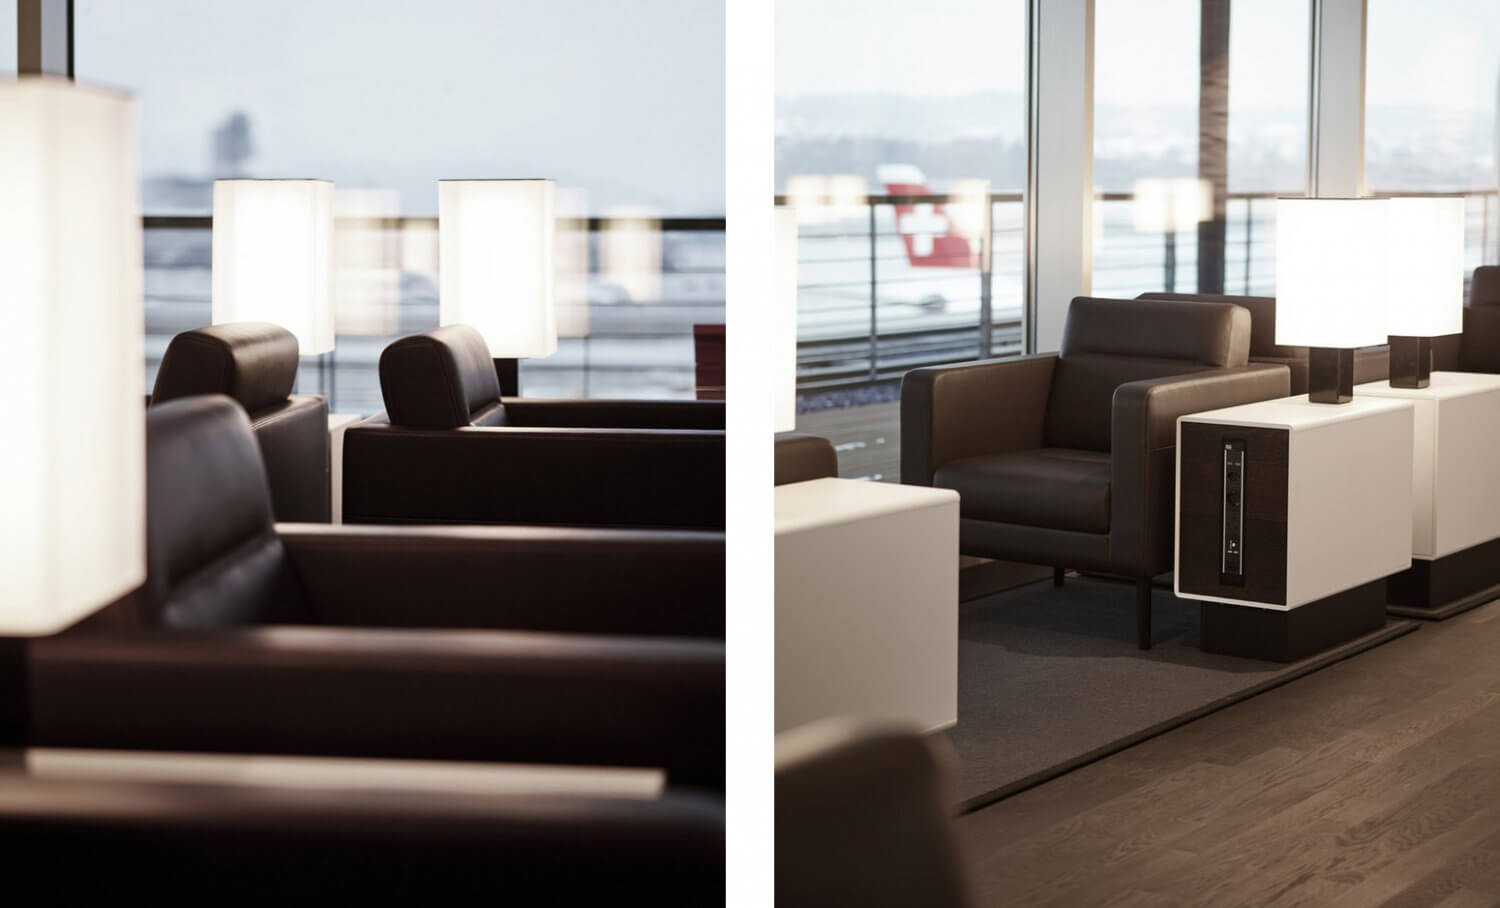 Swiss Panoramic Business Lounge at Zurich Airport — Swiss Panoramic Business Lounge at Zurich Airport